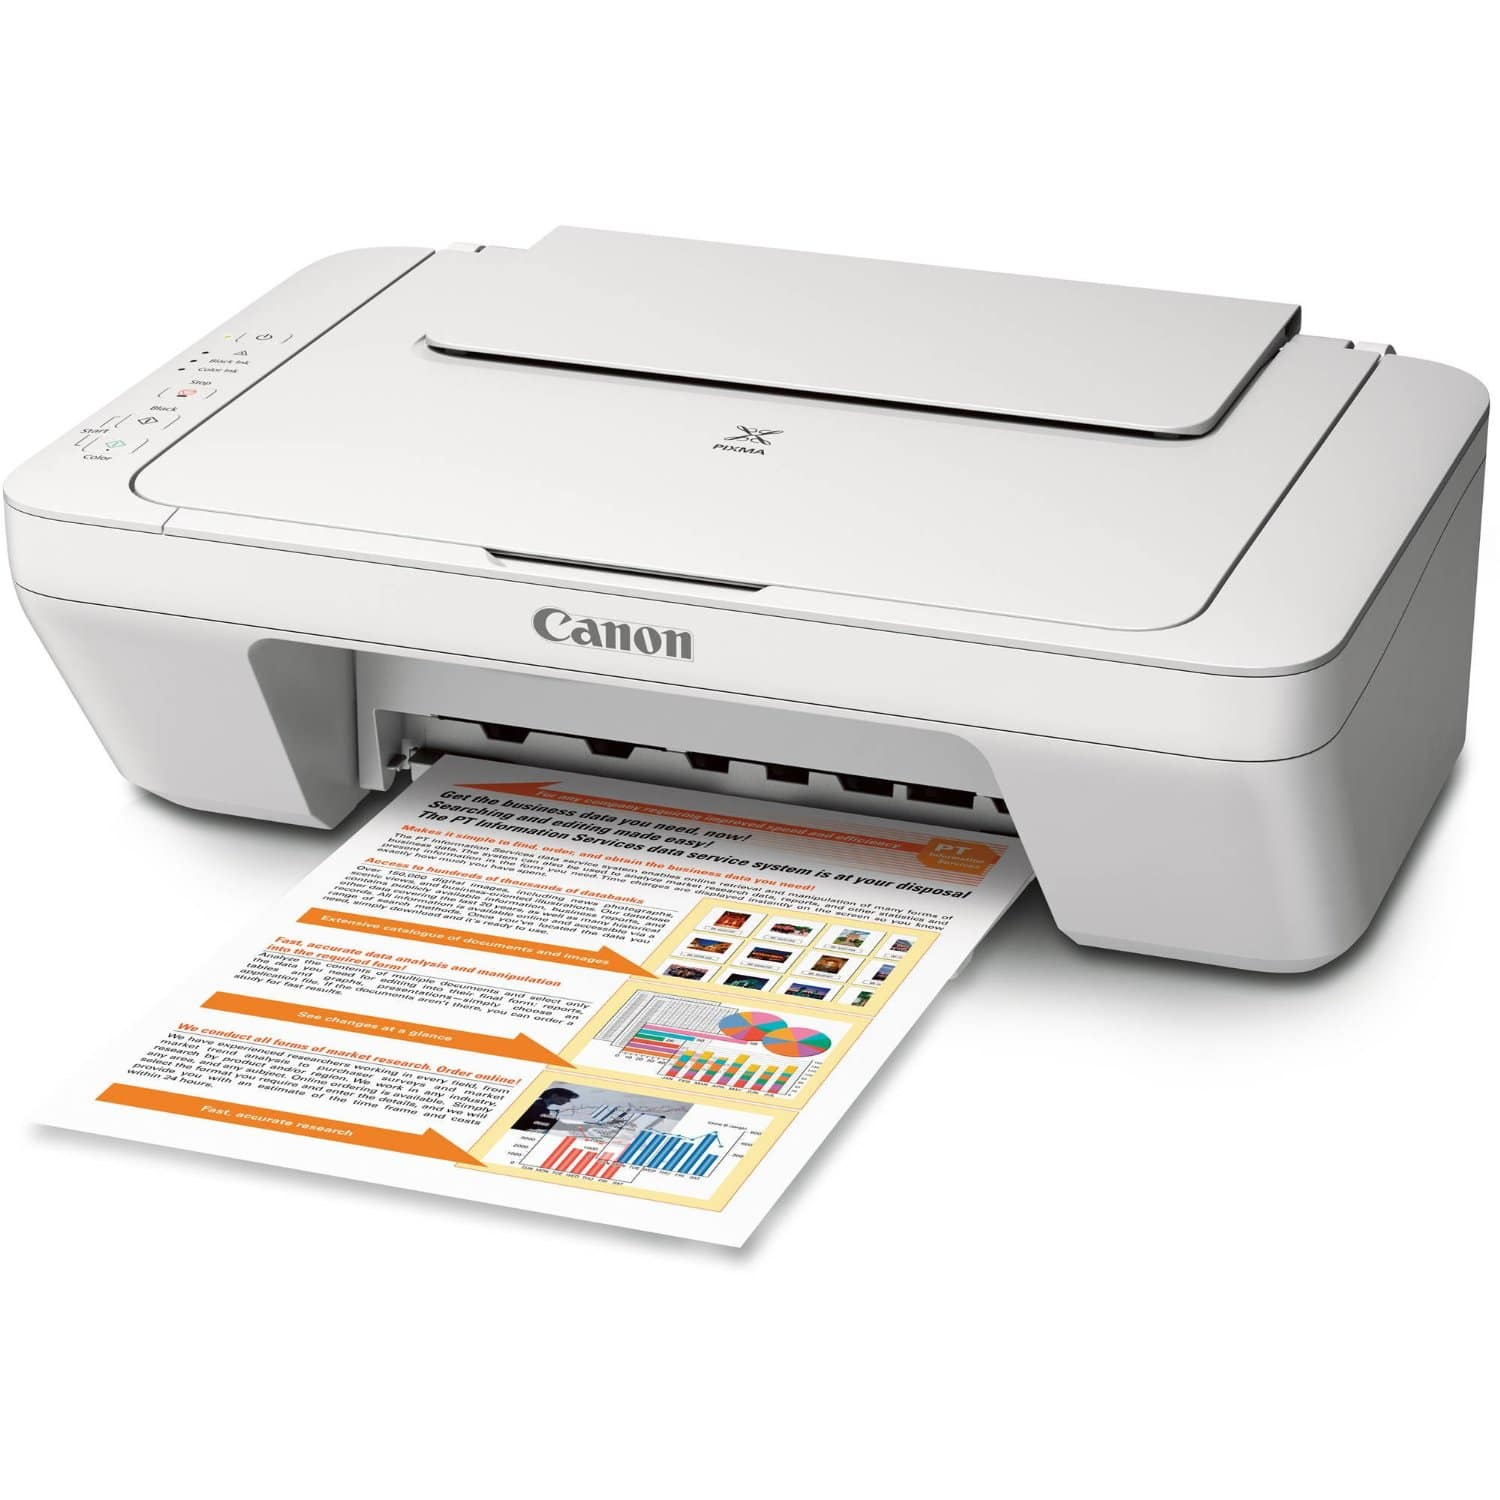 Canon PIXMA MG2520 Inkjet All-In-One Printer  $19 + Free Shipping